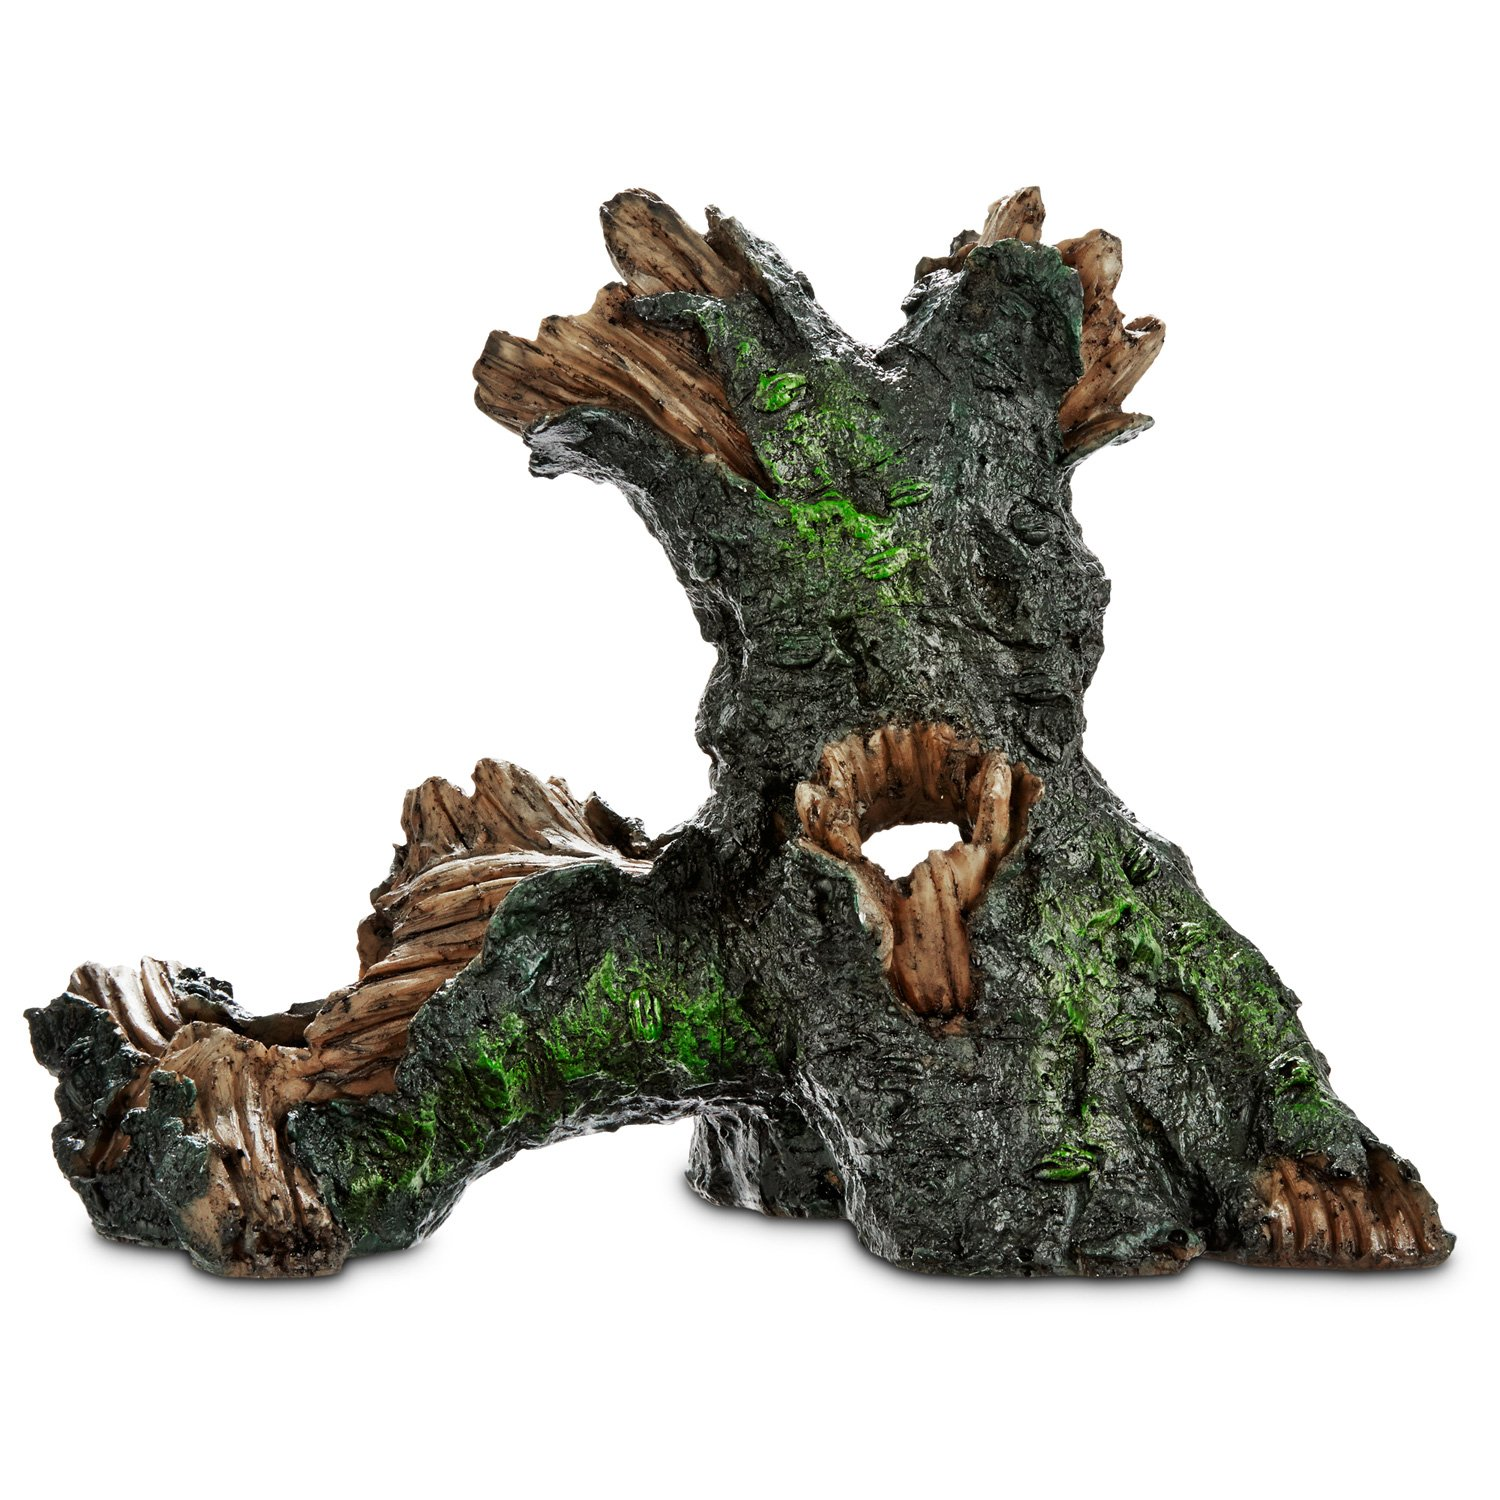 Imagitarium large tree log aquatic decor petco for Aquarium log decoration